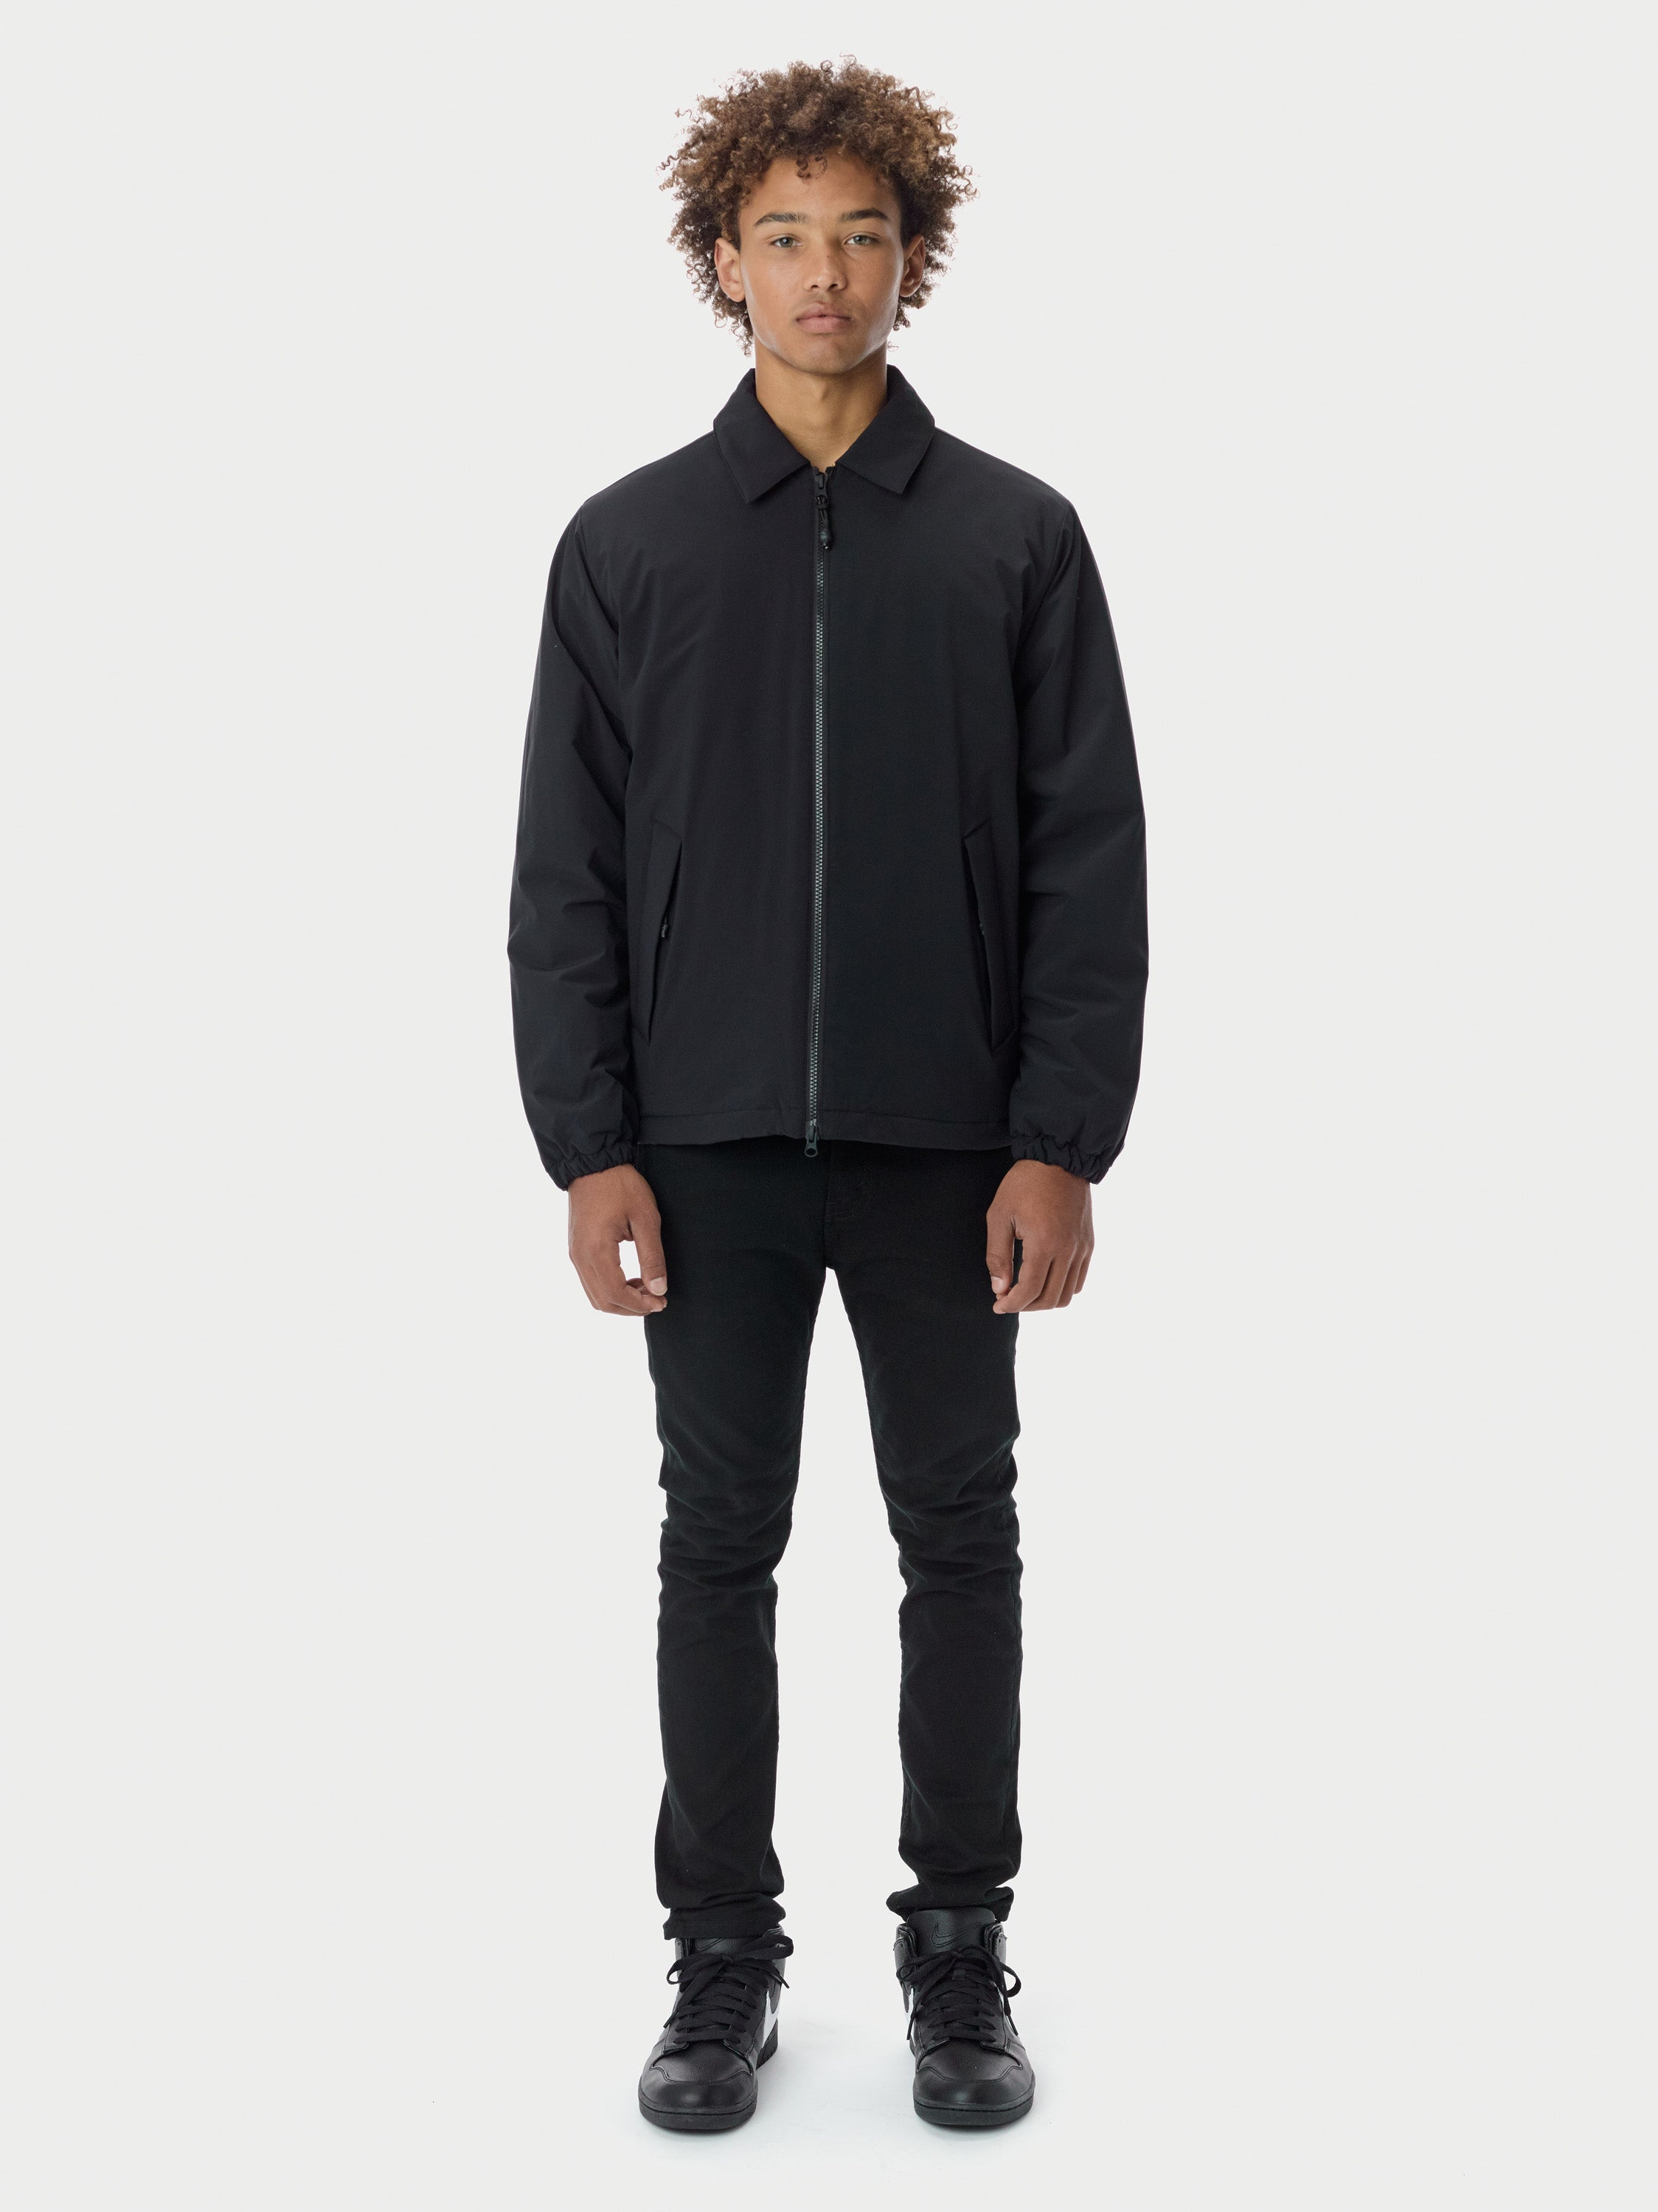 Filled Harrington - Black Harrington - Black